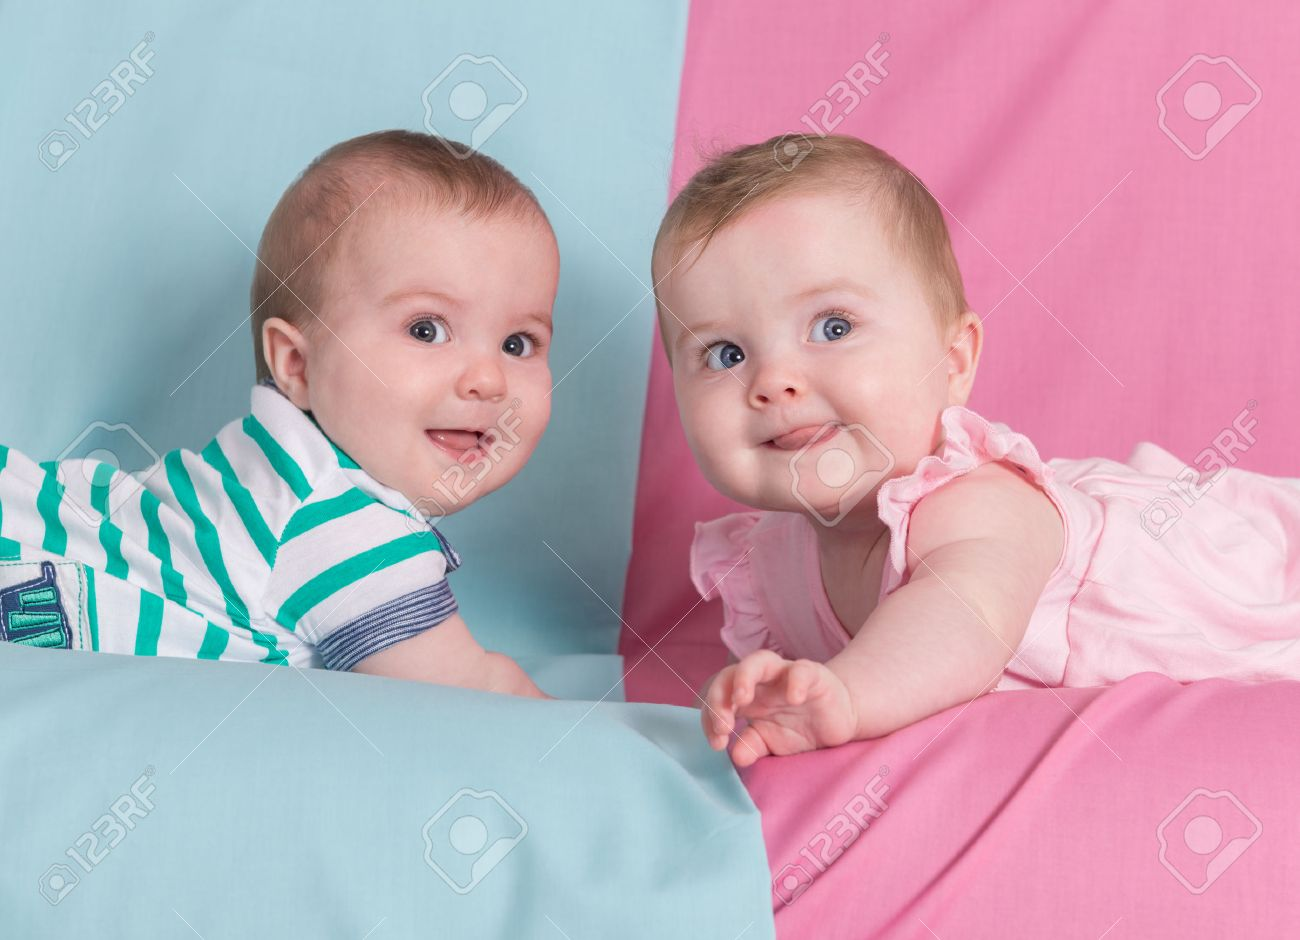 How to conceive a baby girl or boy